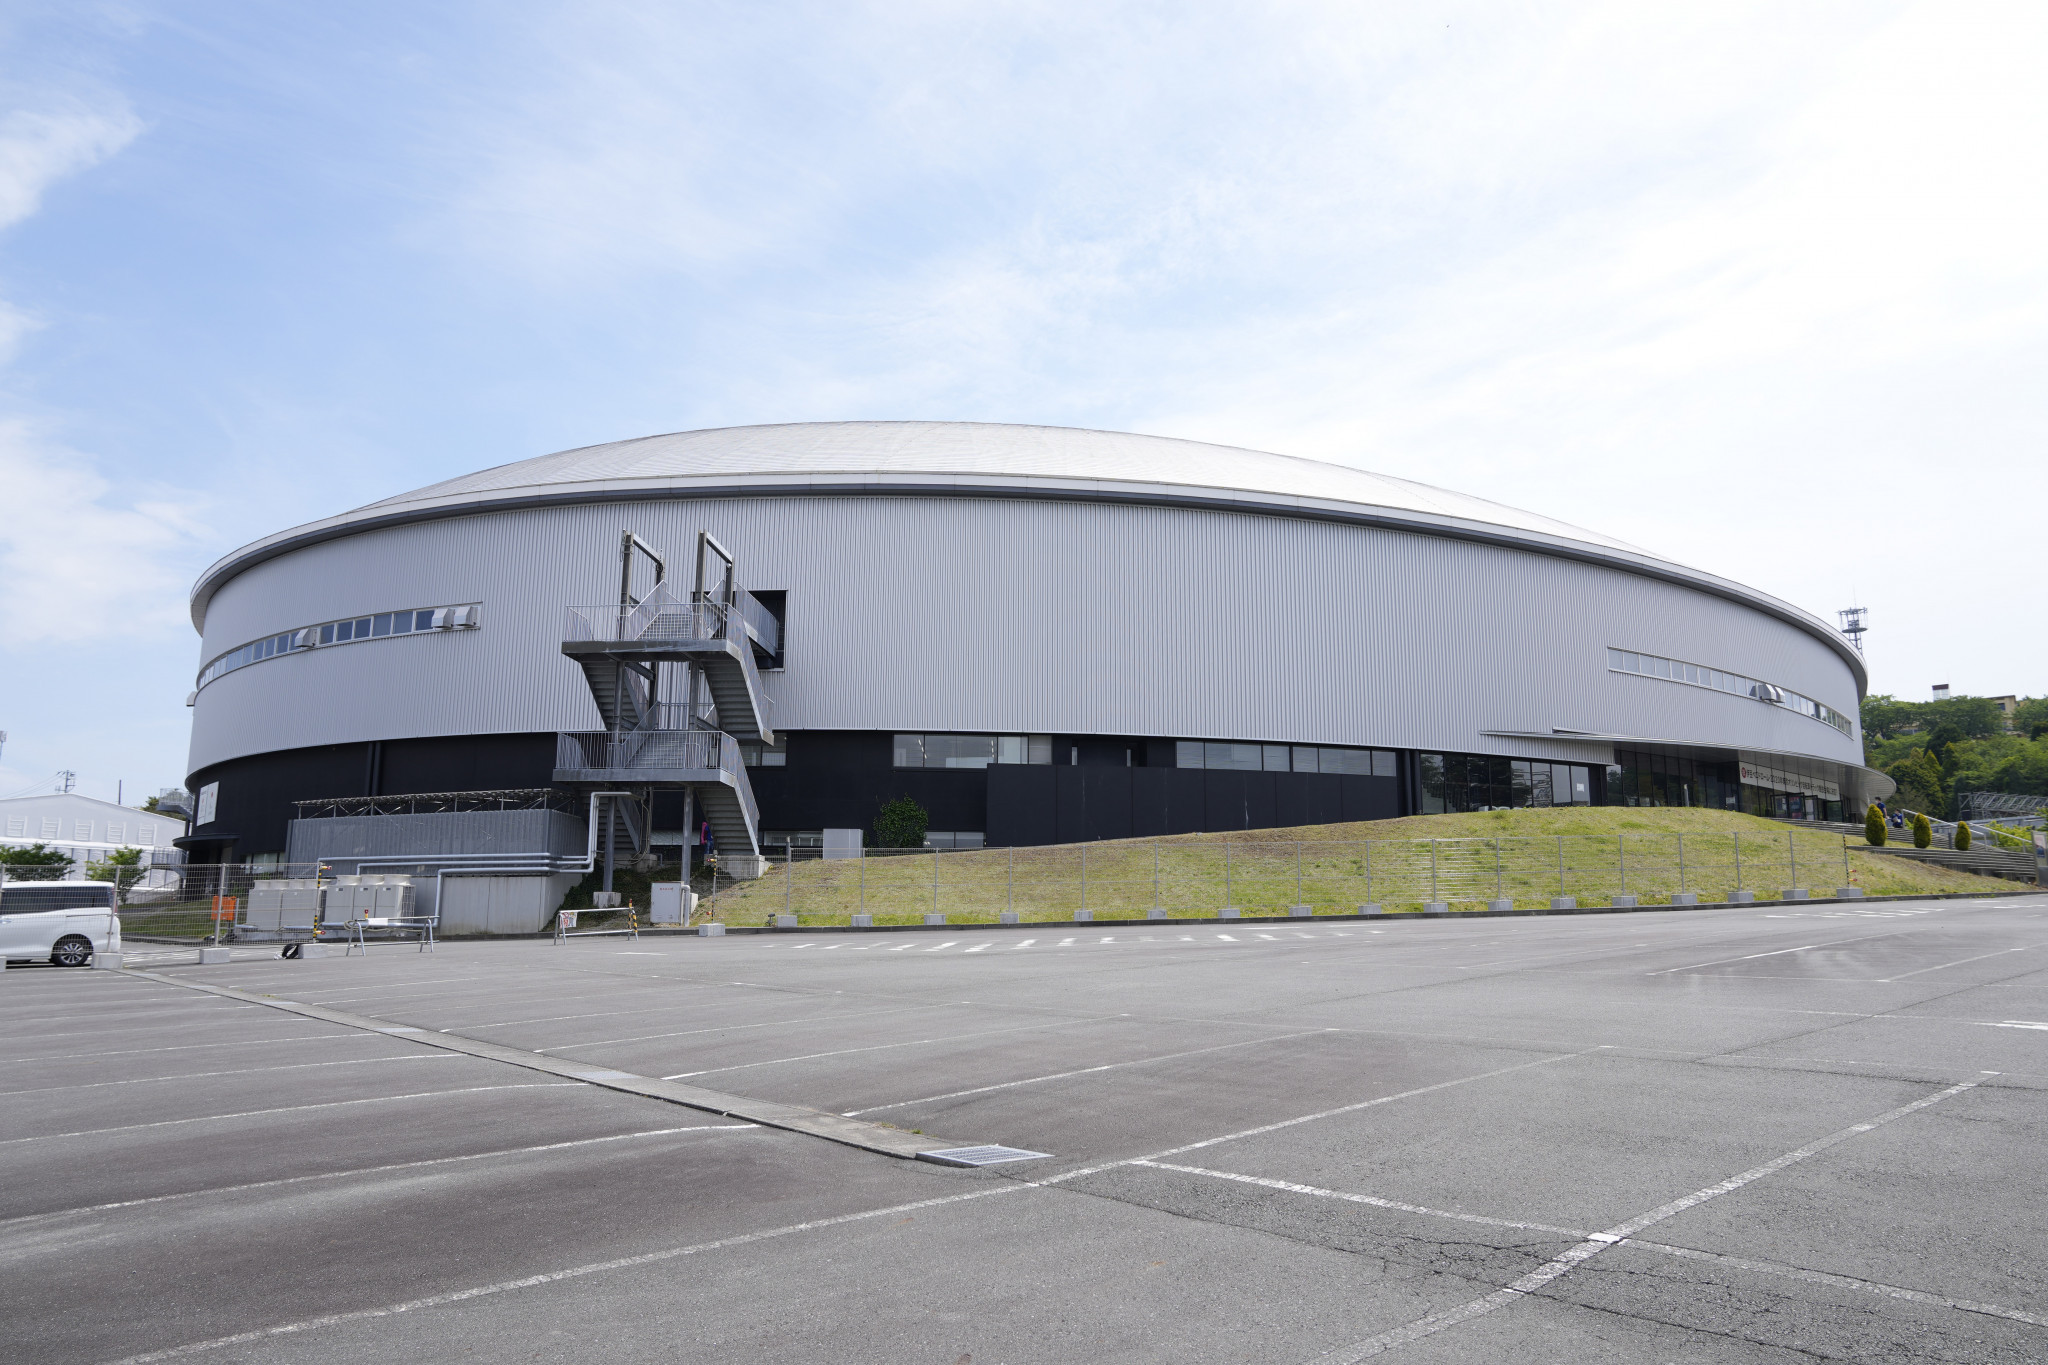 Britain's Olympic track cycling dominance set to be tested at Izu Velodrome